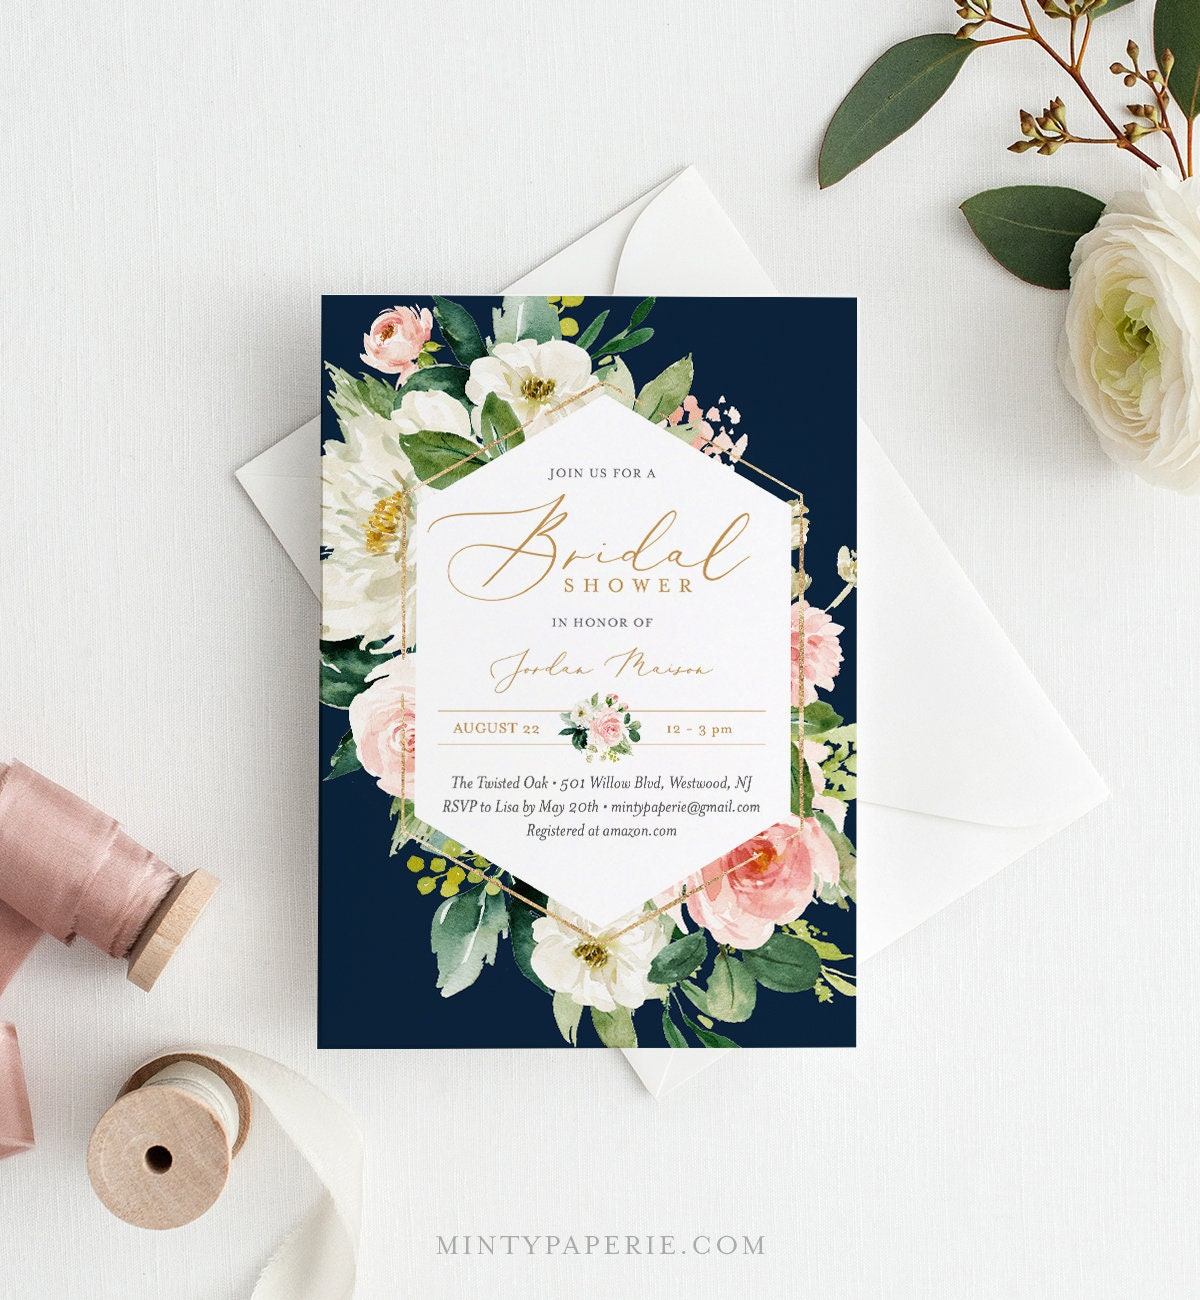 self editing bridal shower invitation template instant download printable wedding shower invite boho floral navy templett 043 145bs